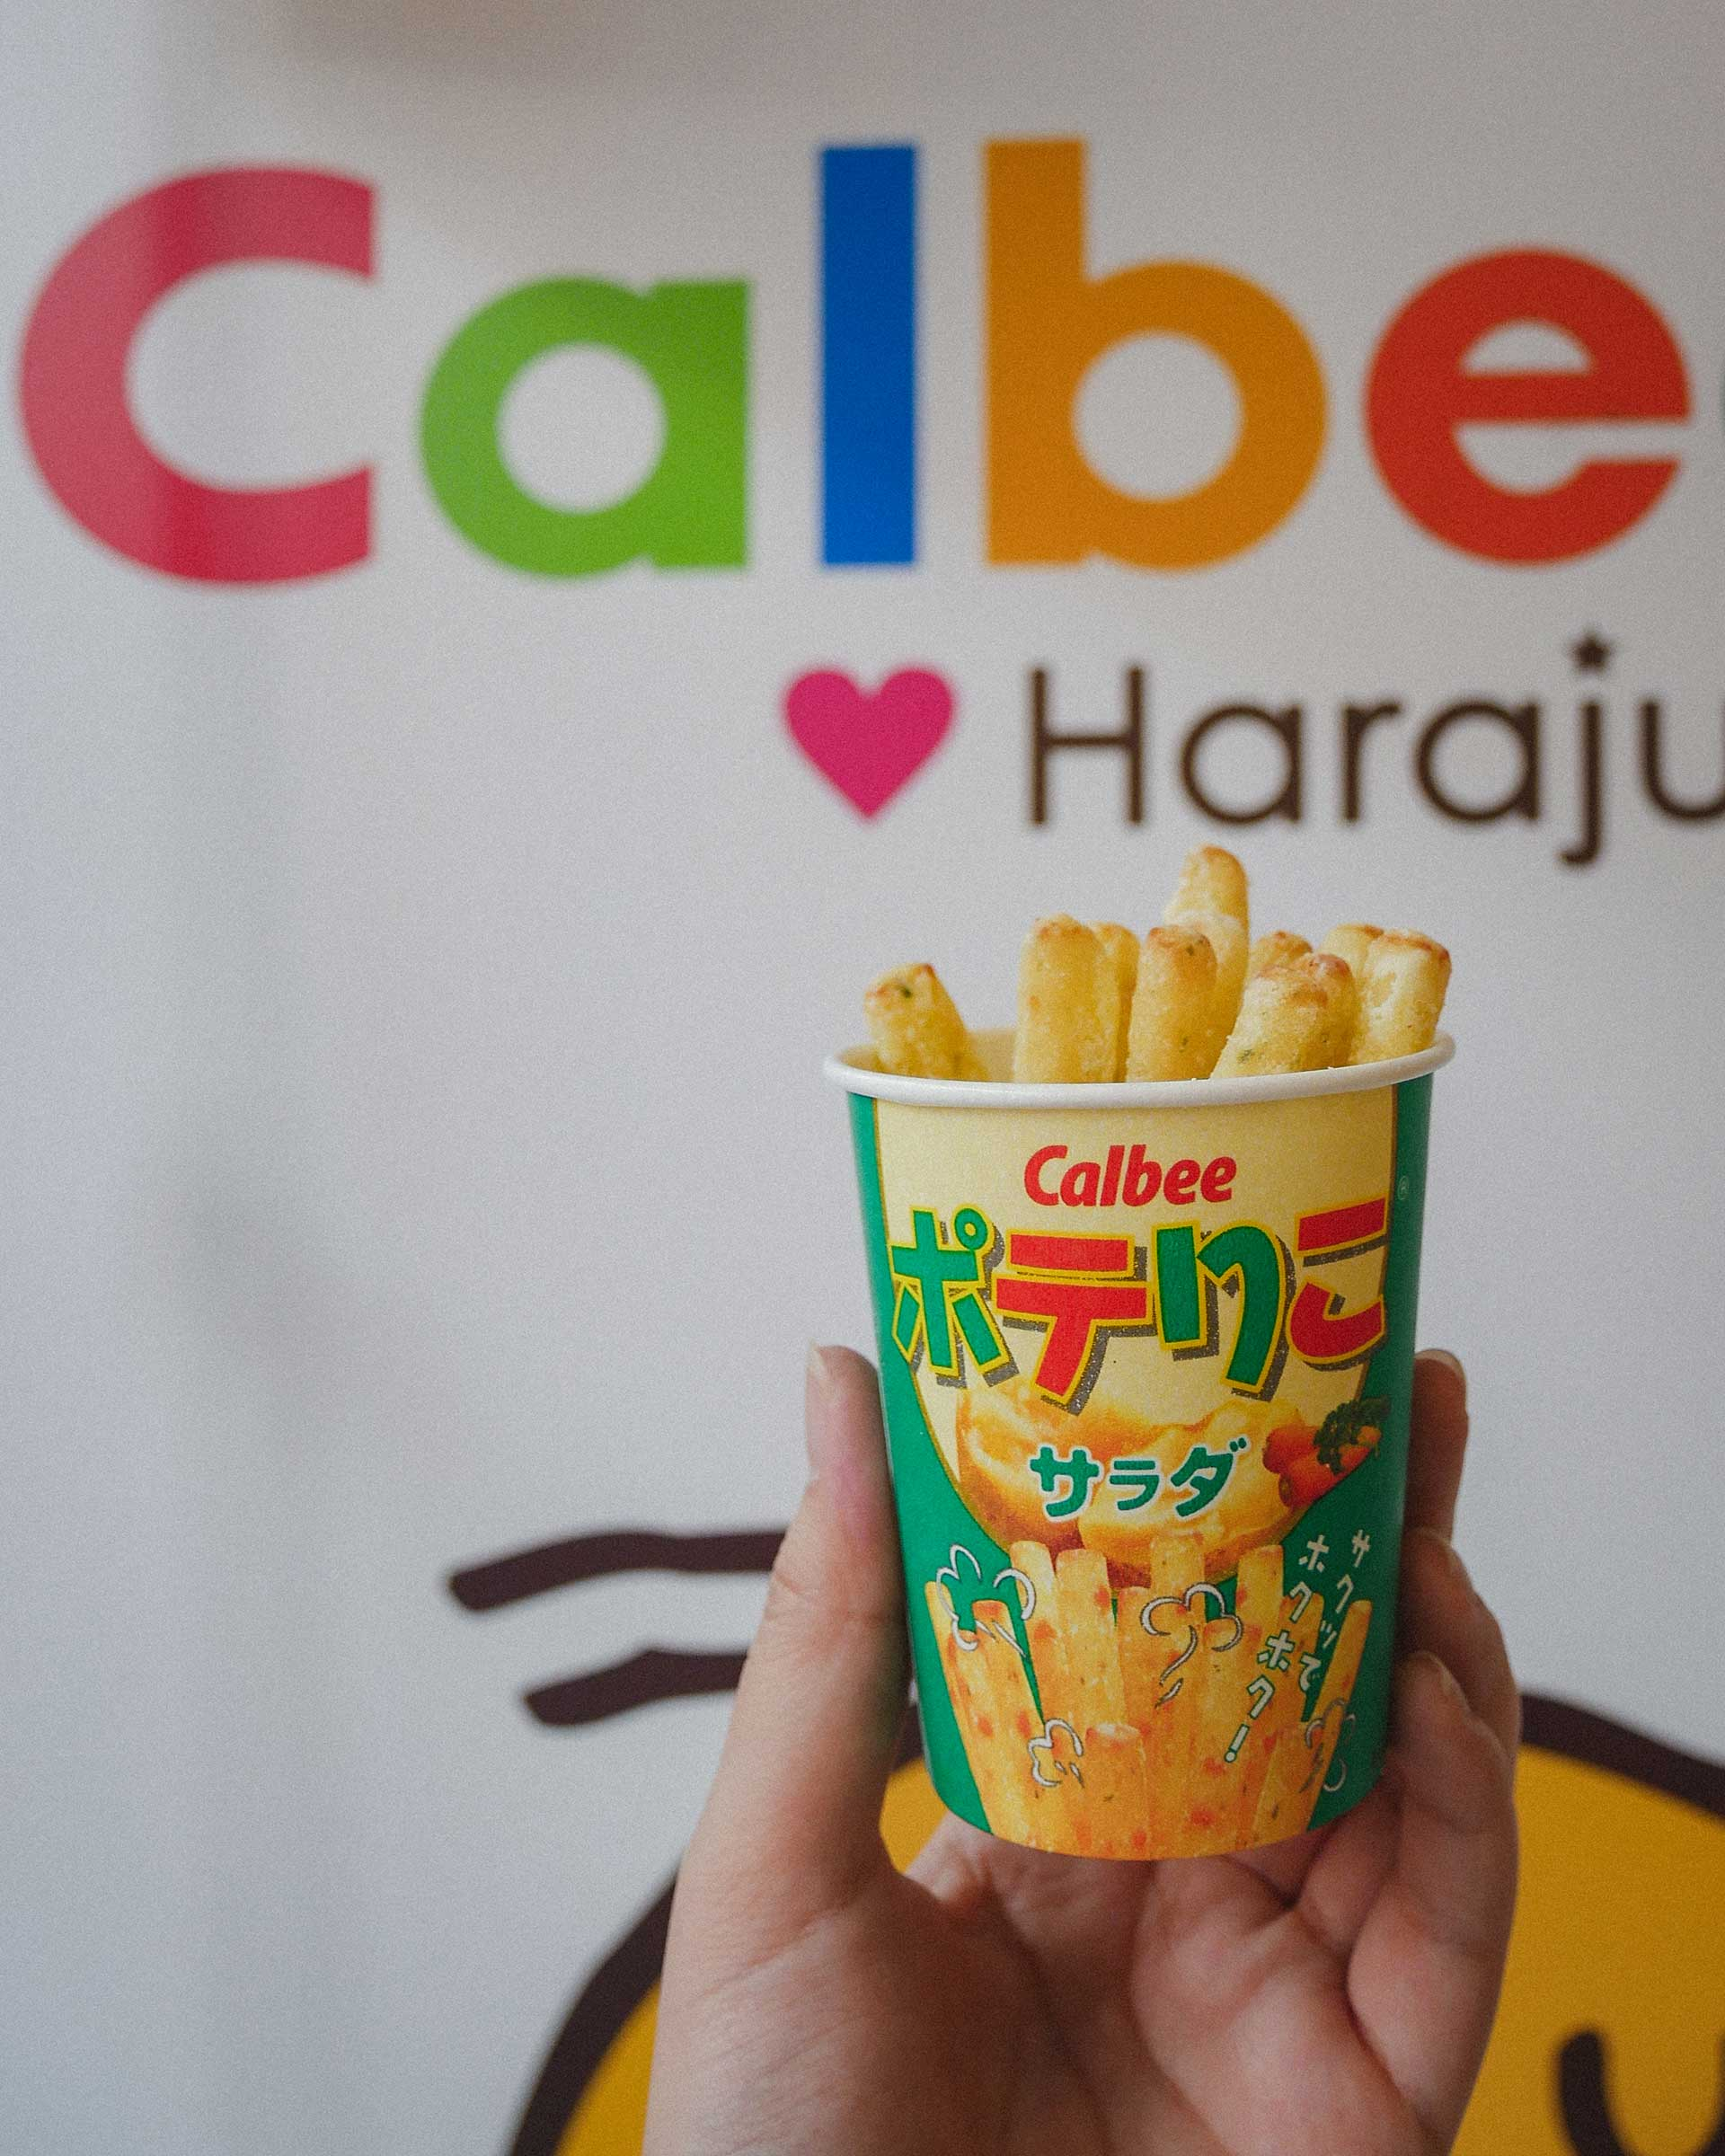 Calbee+ fries in a cup for 310 yen ($2.88)